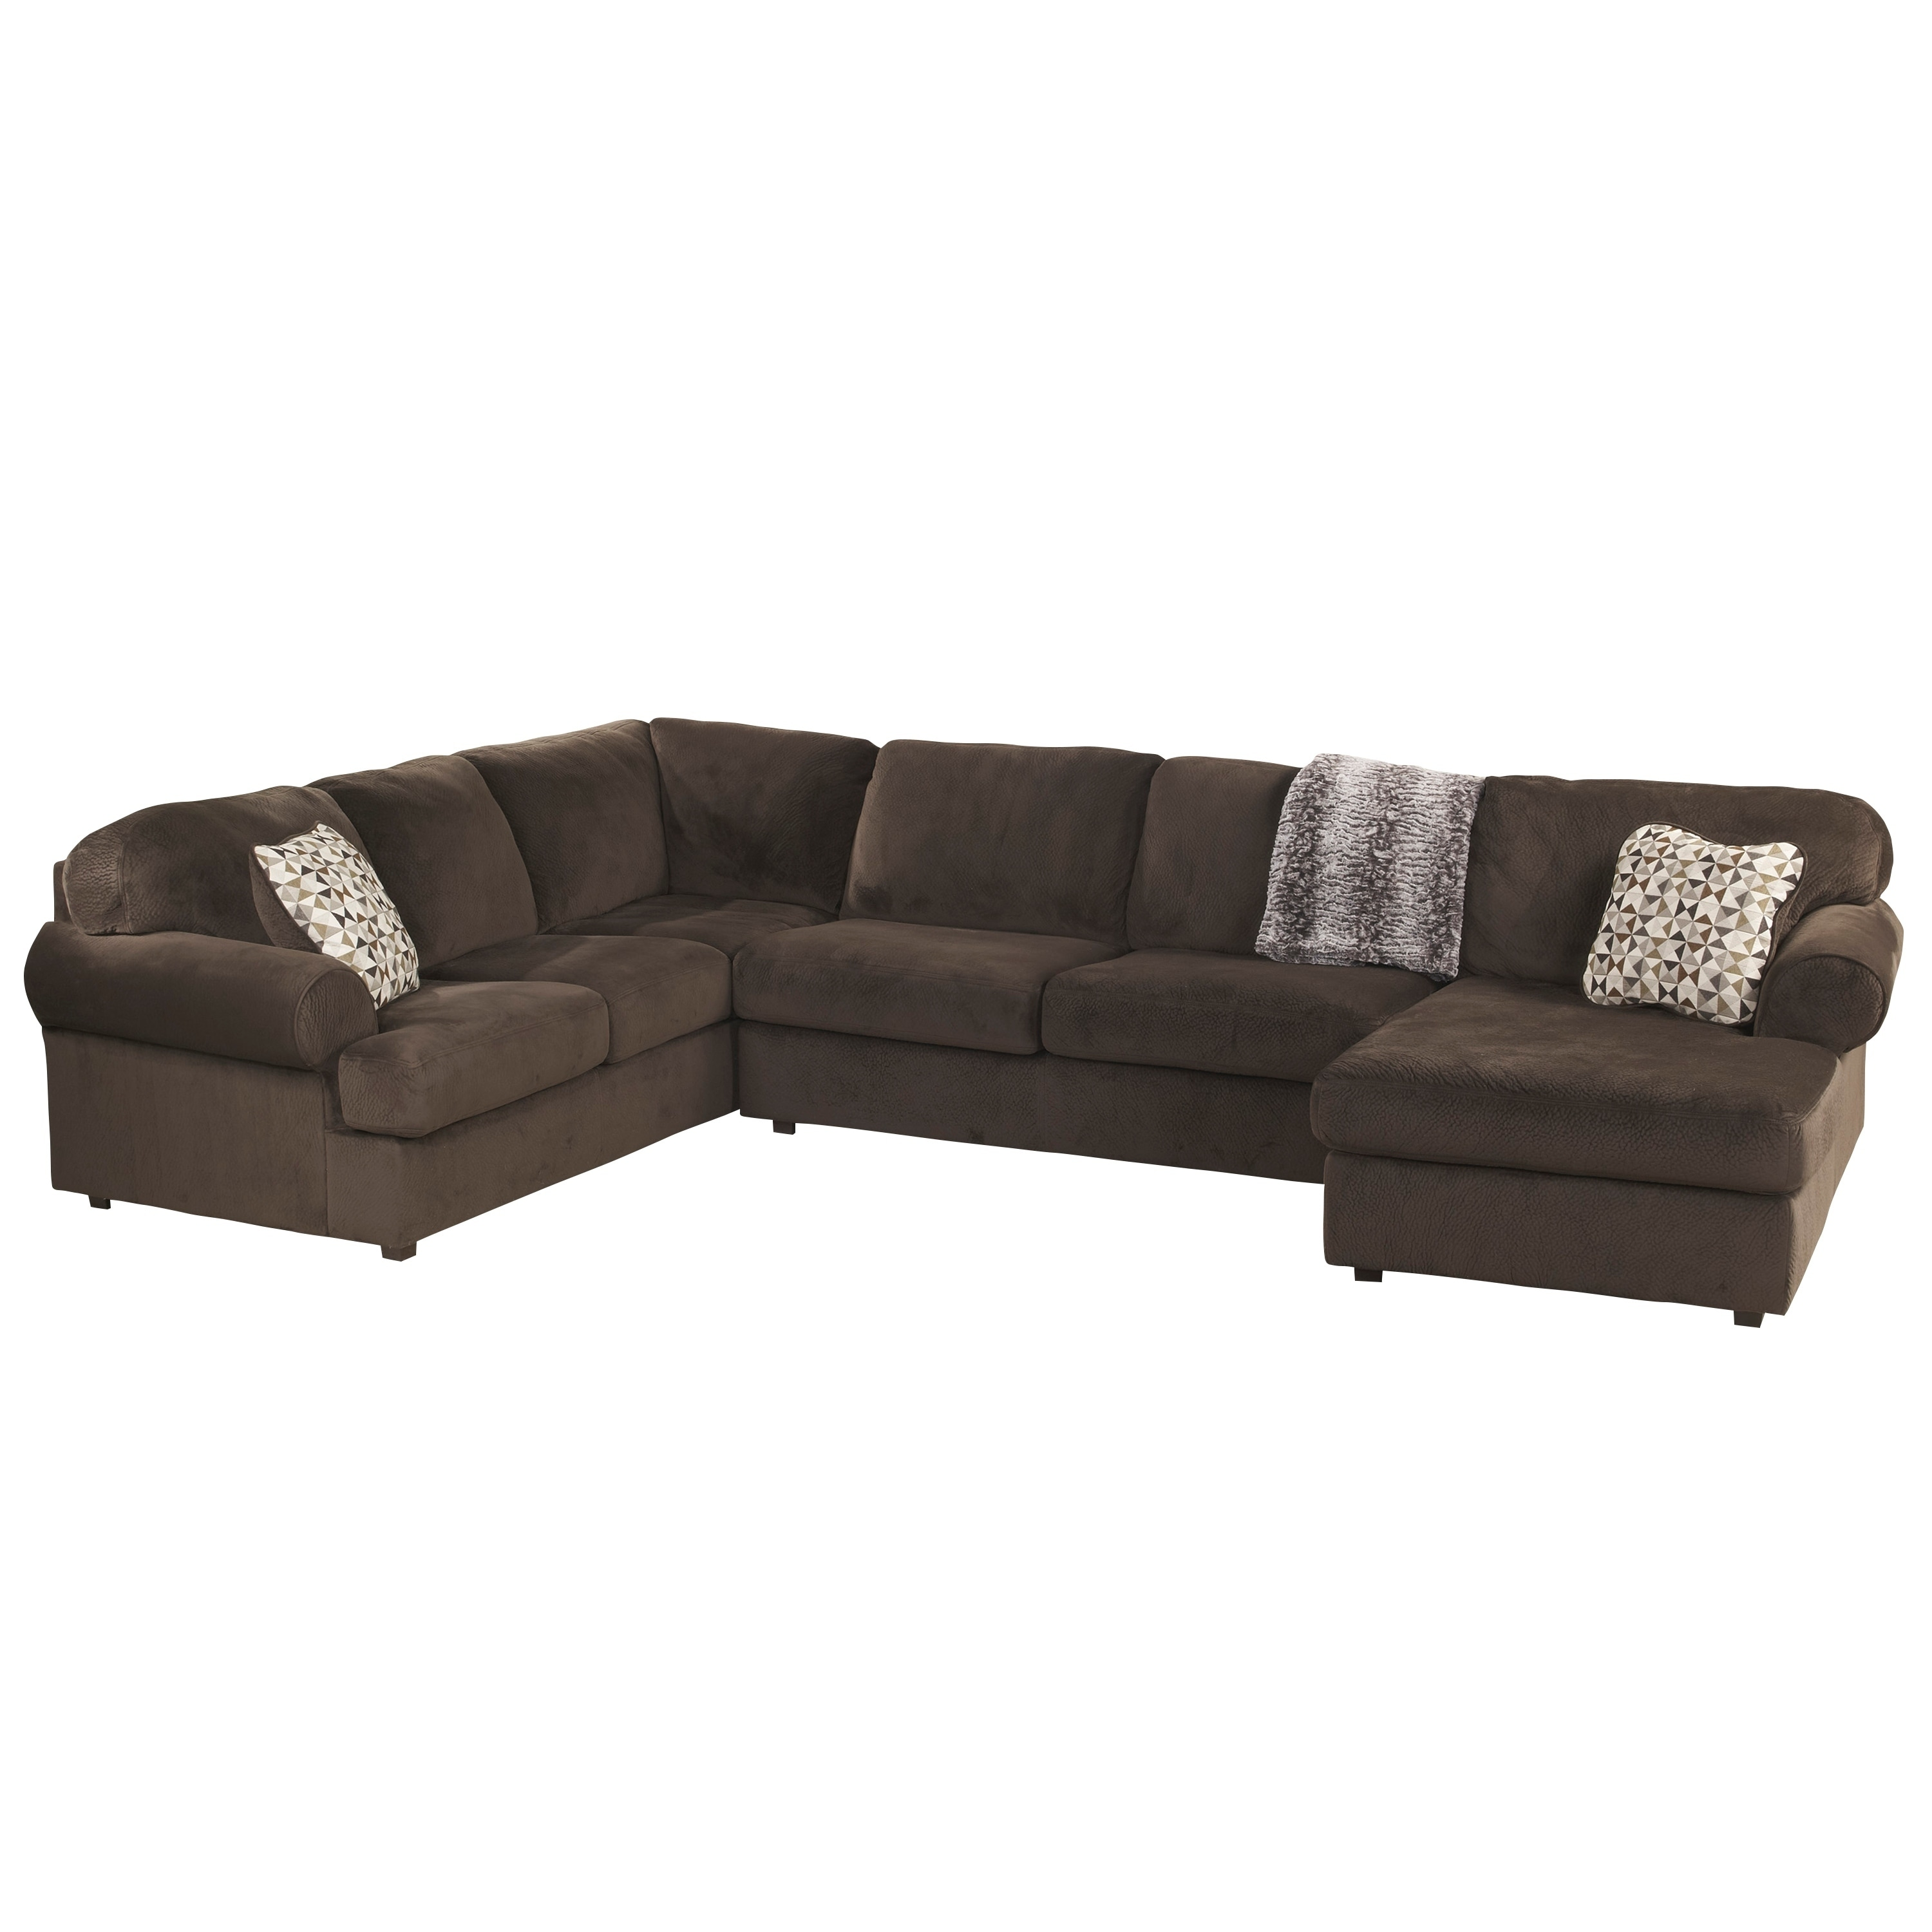 Porch & Den Wells Oversized Fabric Sectional Sofa